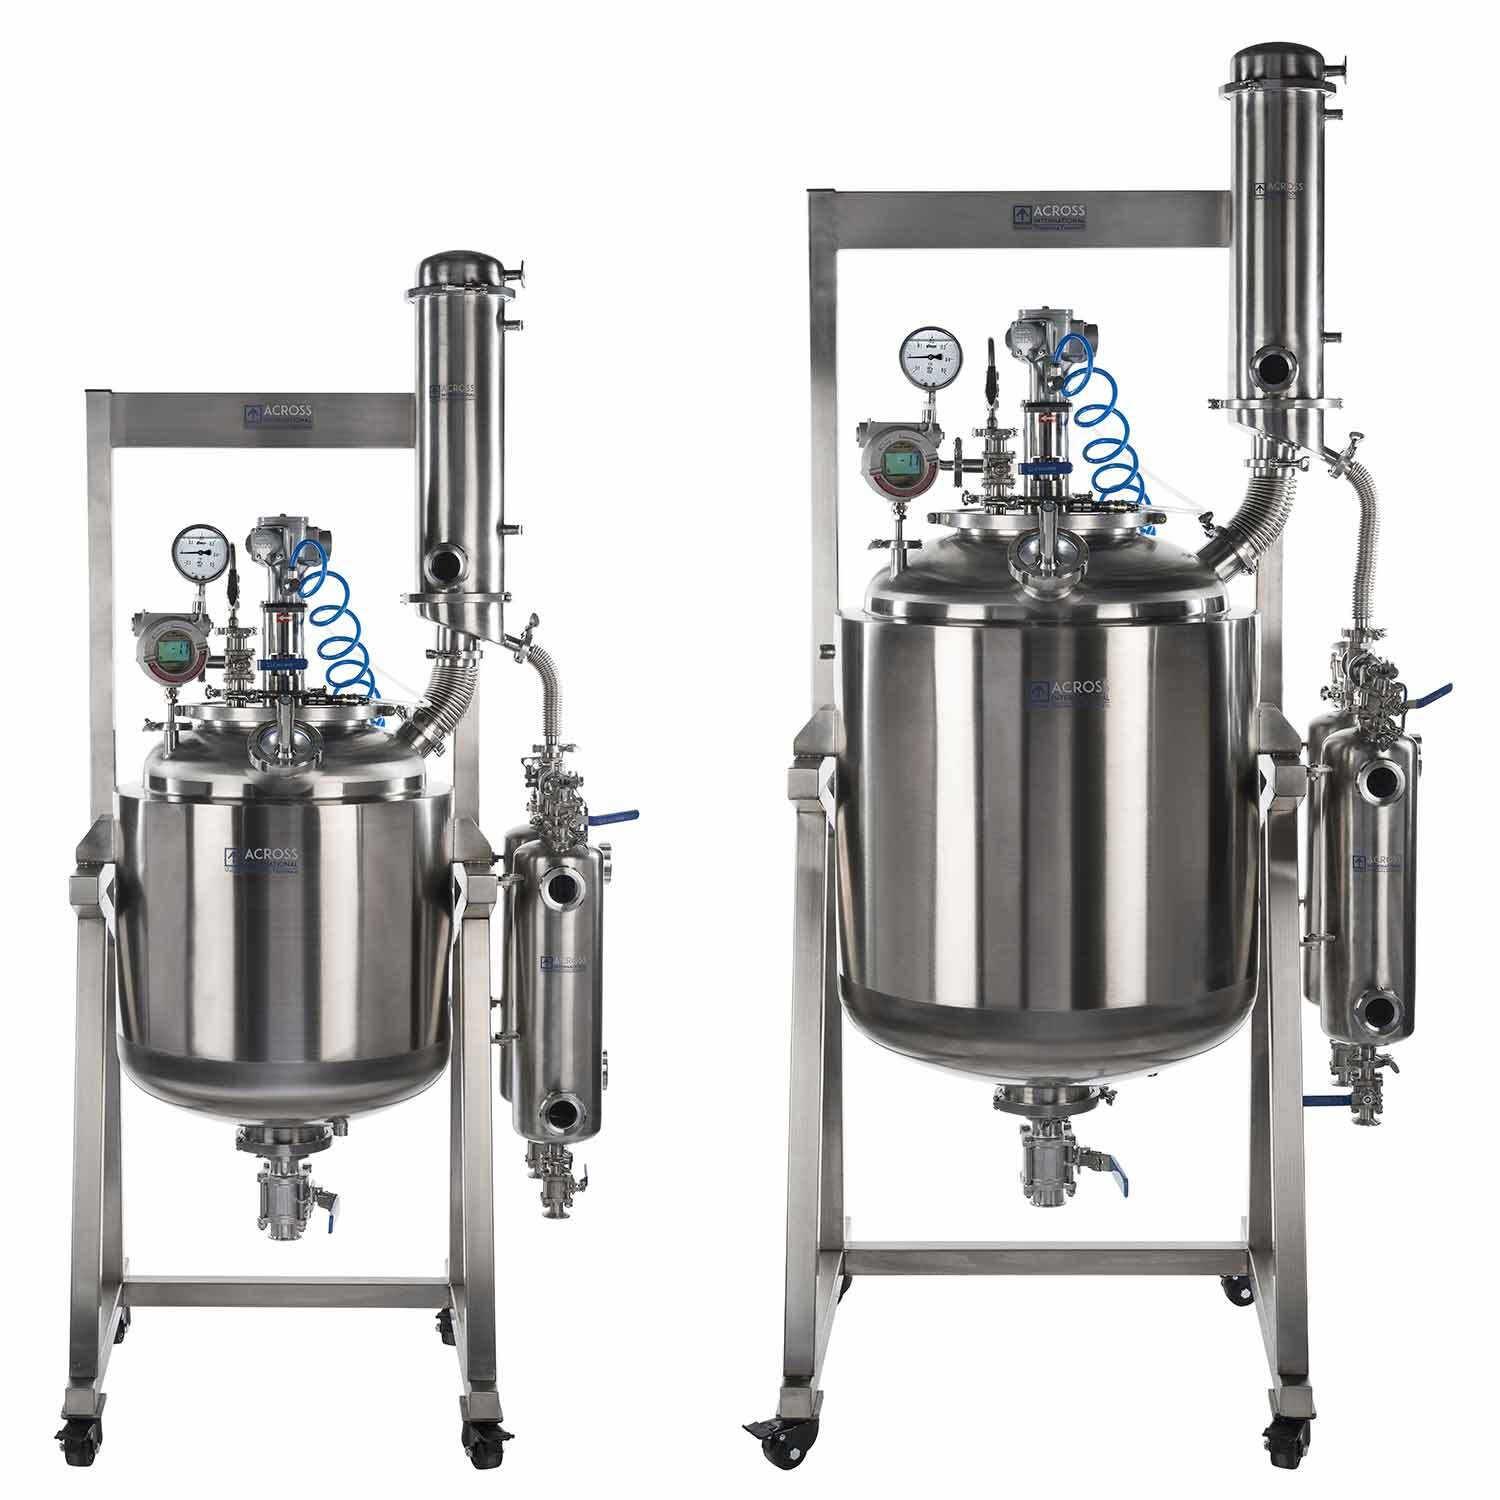 Dual-Jacketed 316L-Grade Stainless Steel Reactor